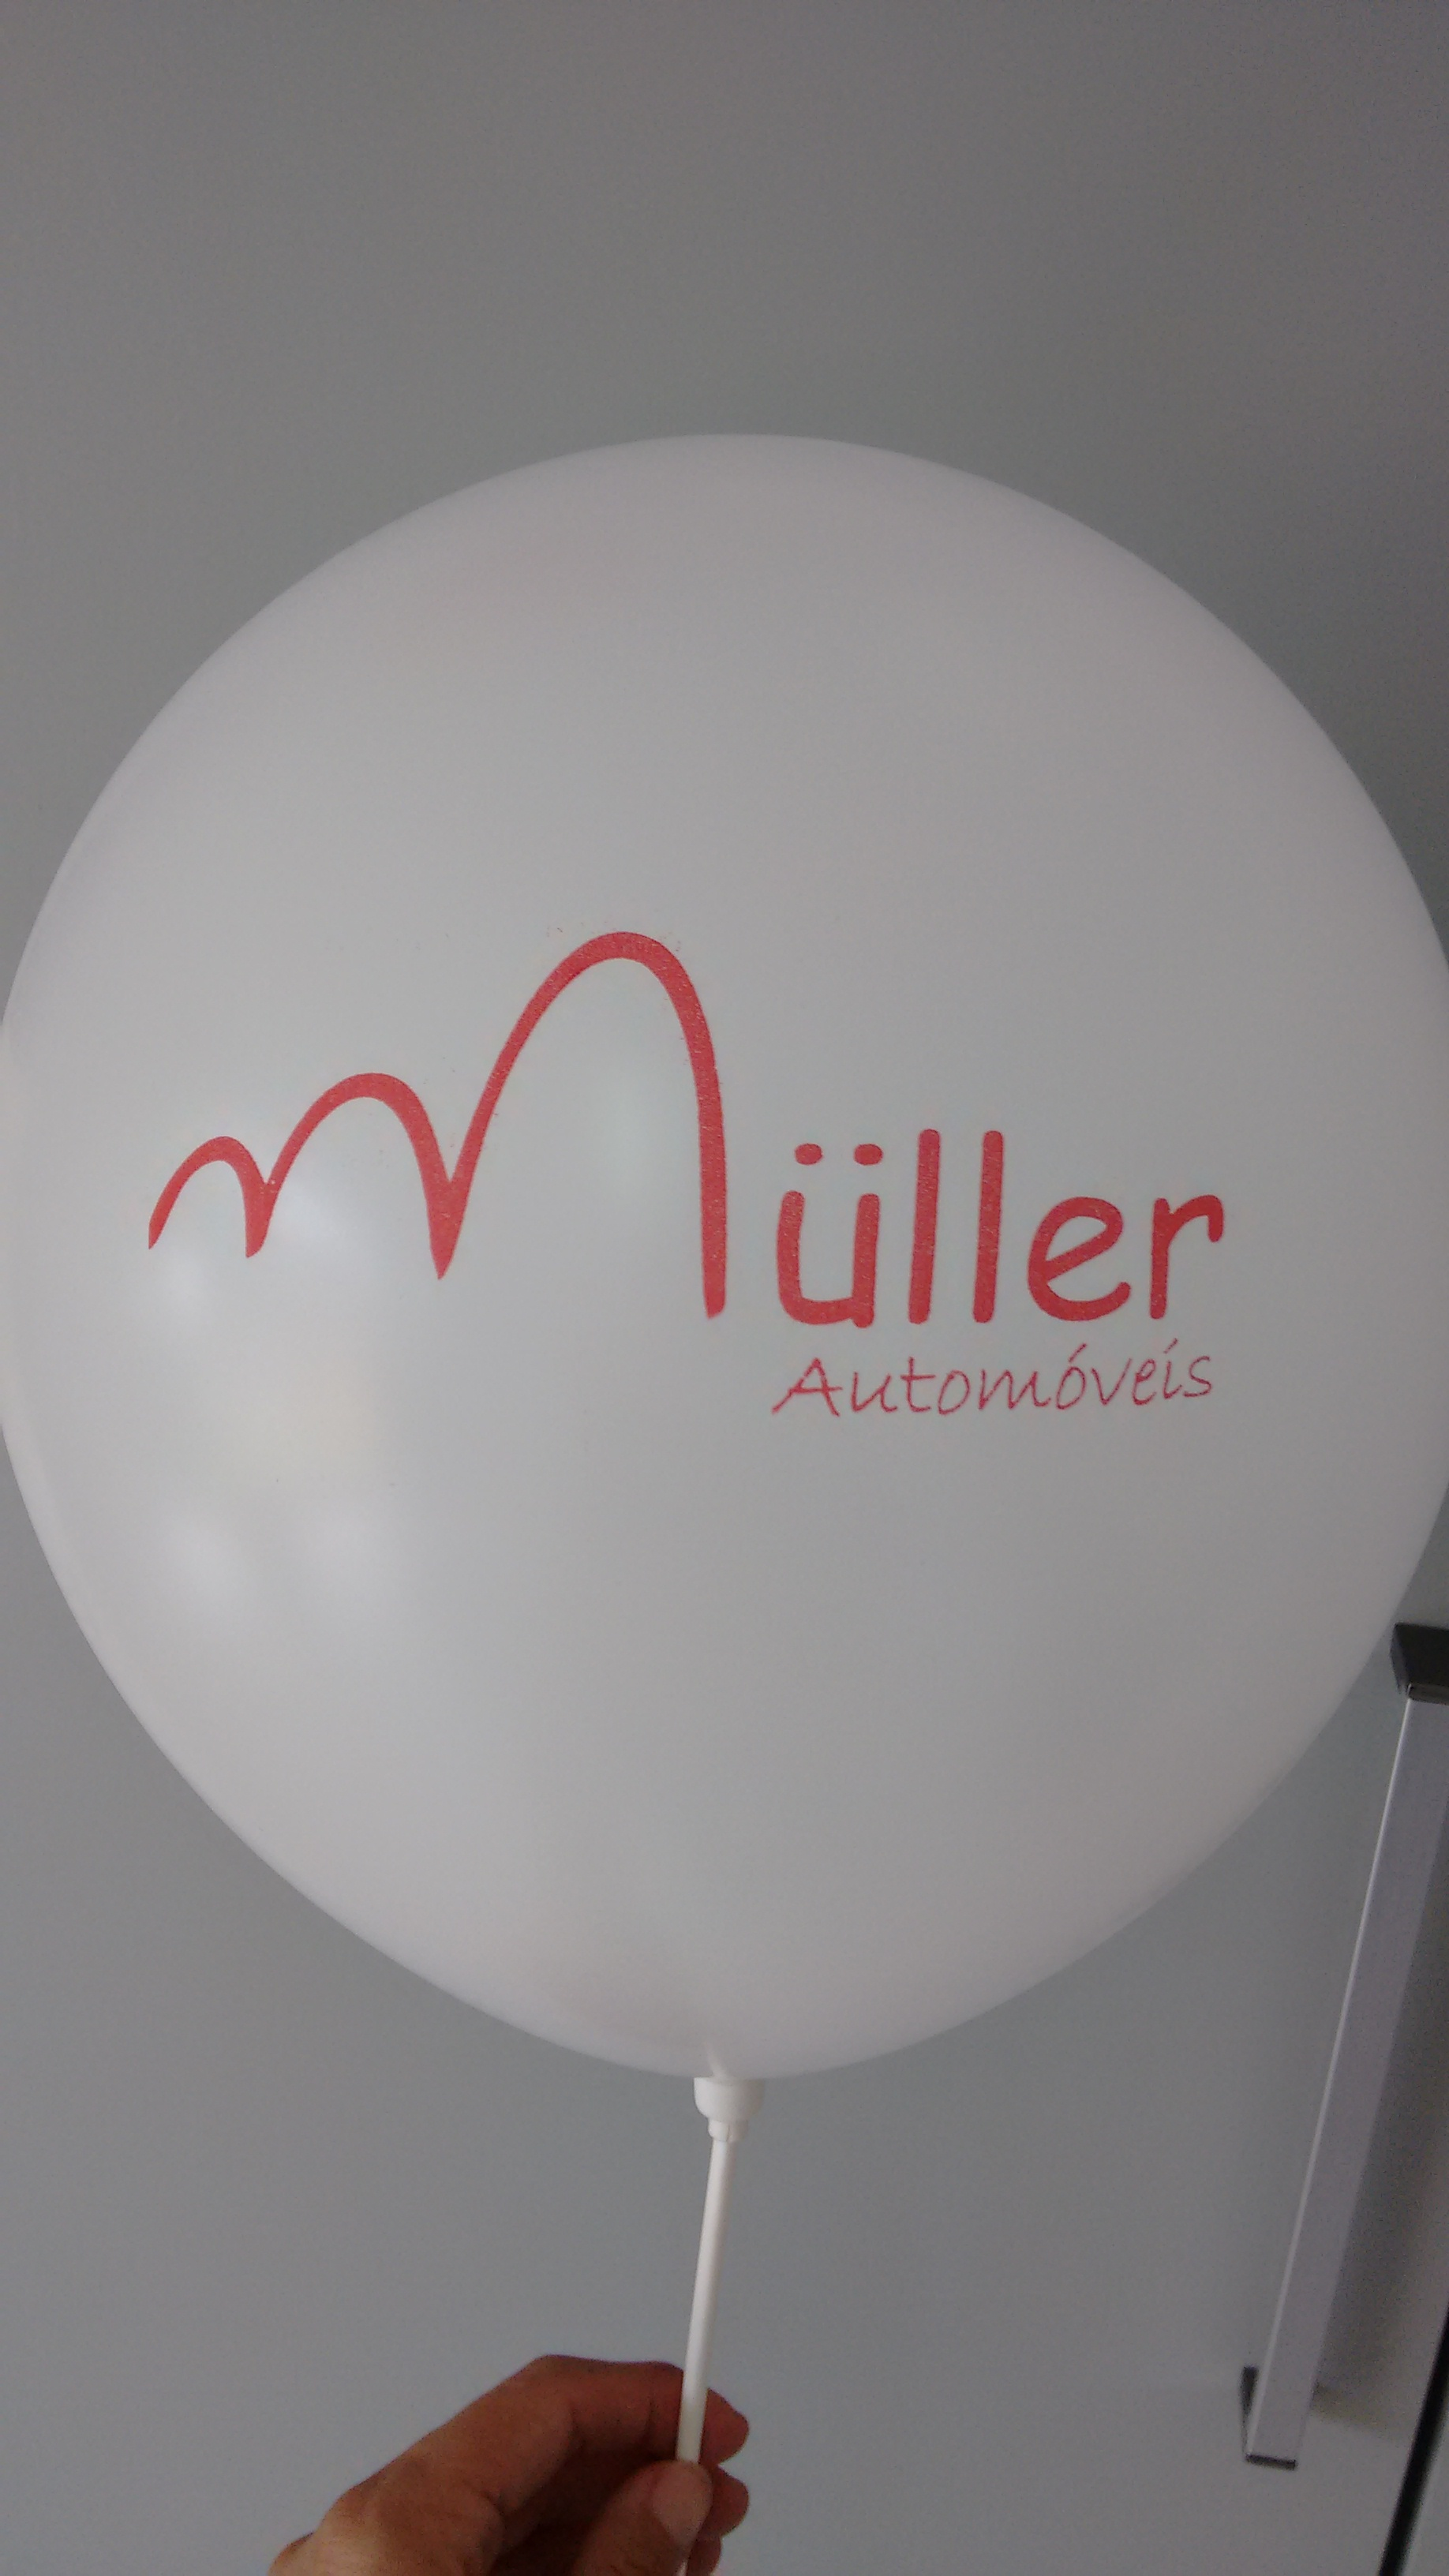 Muller Automoveis